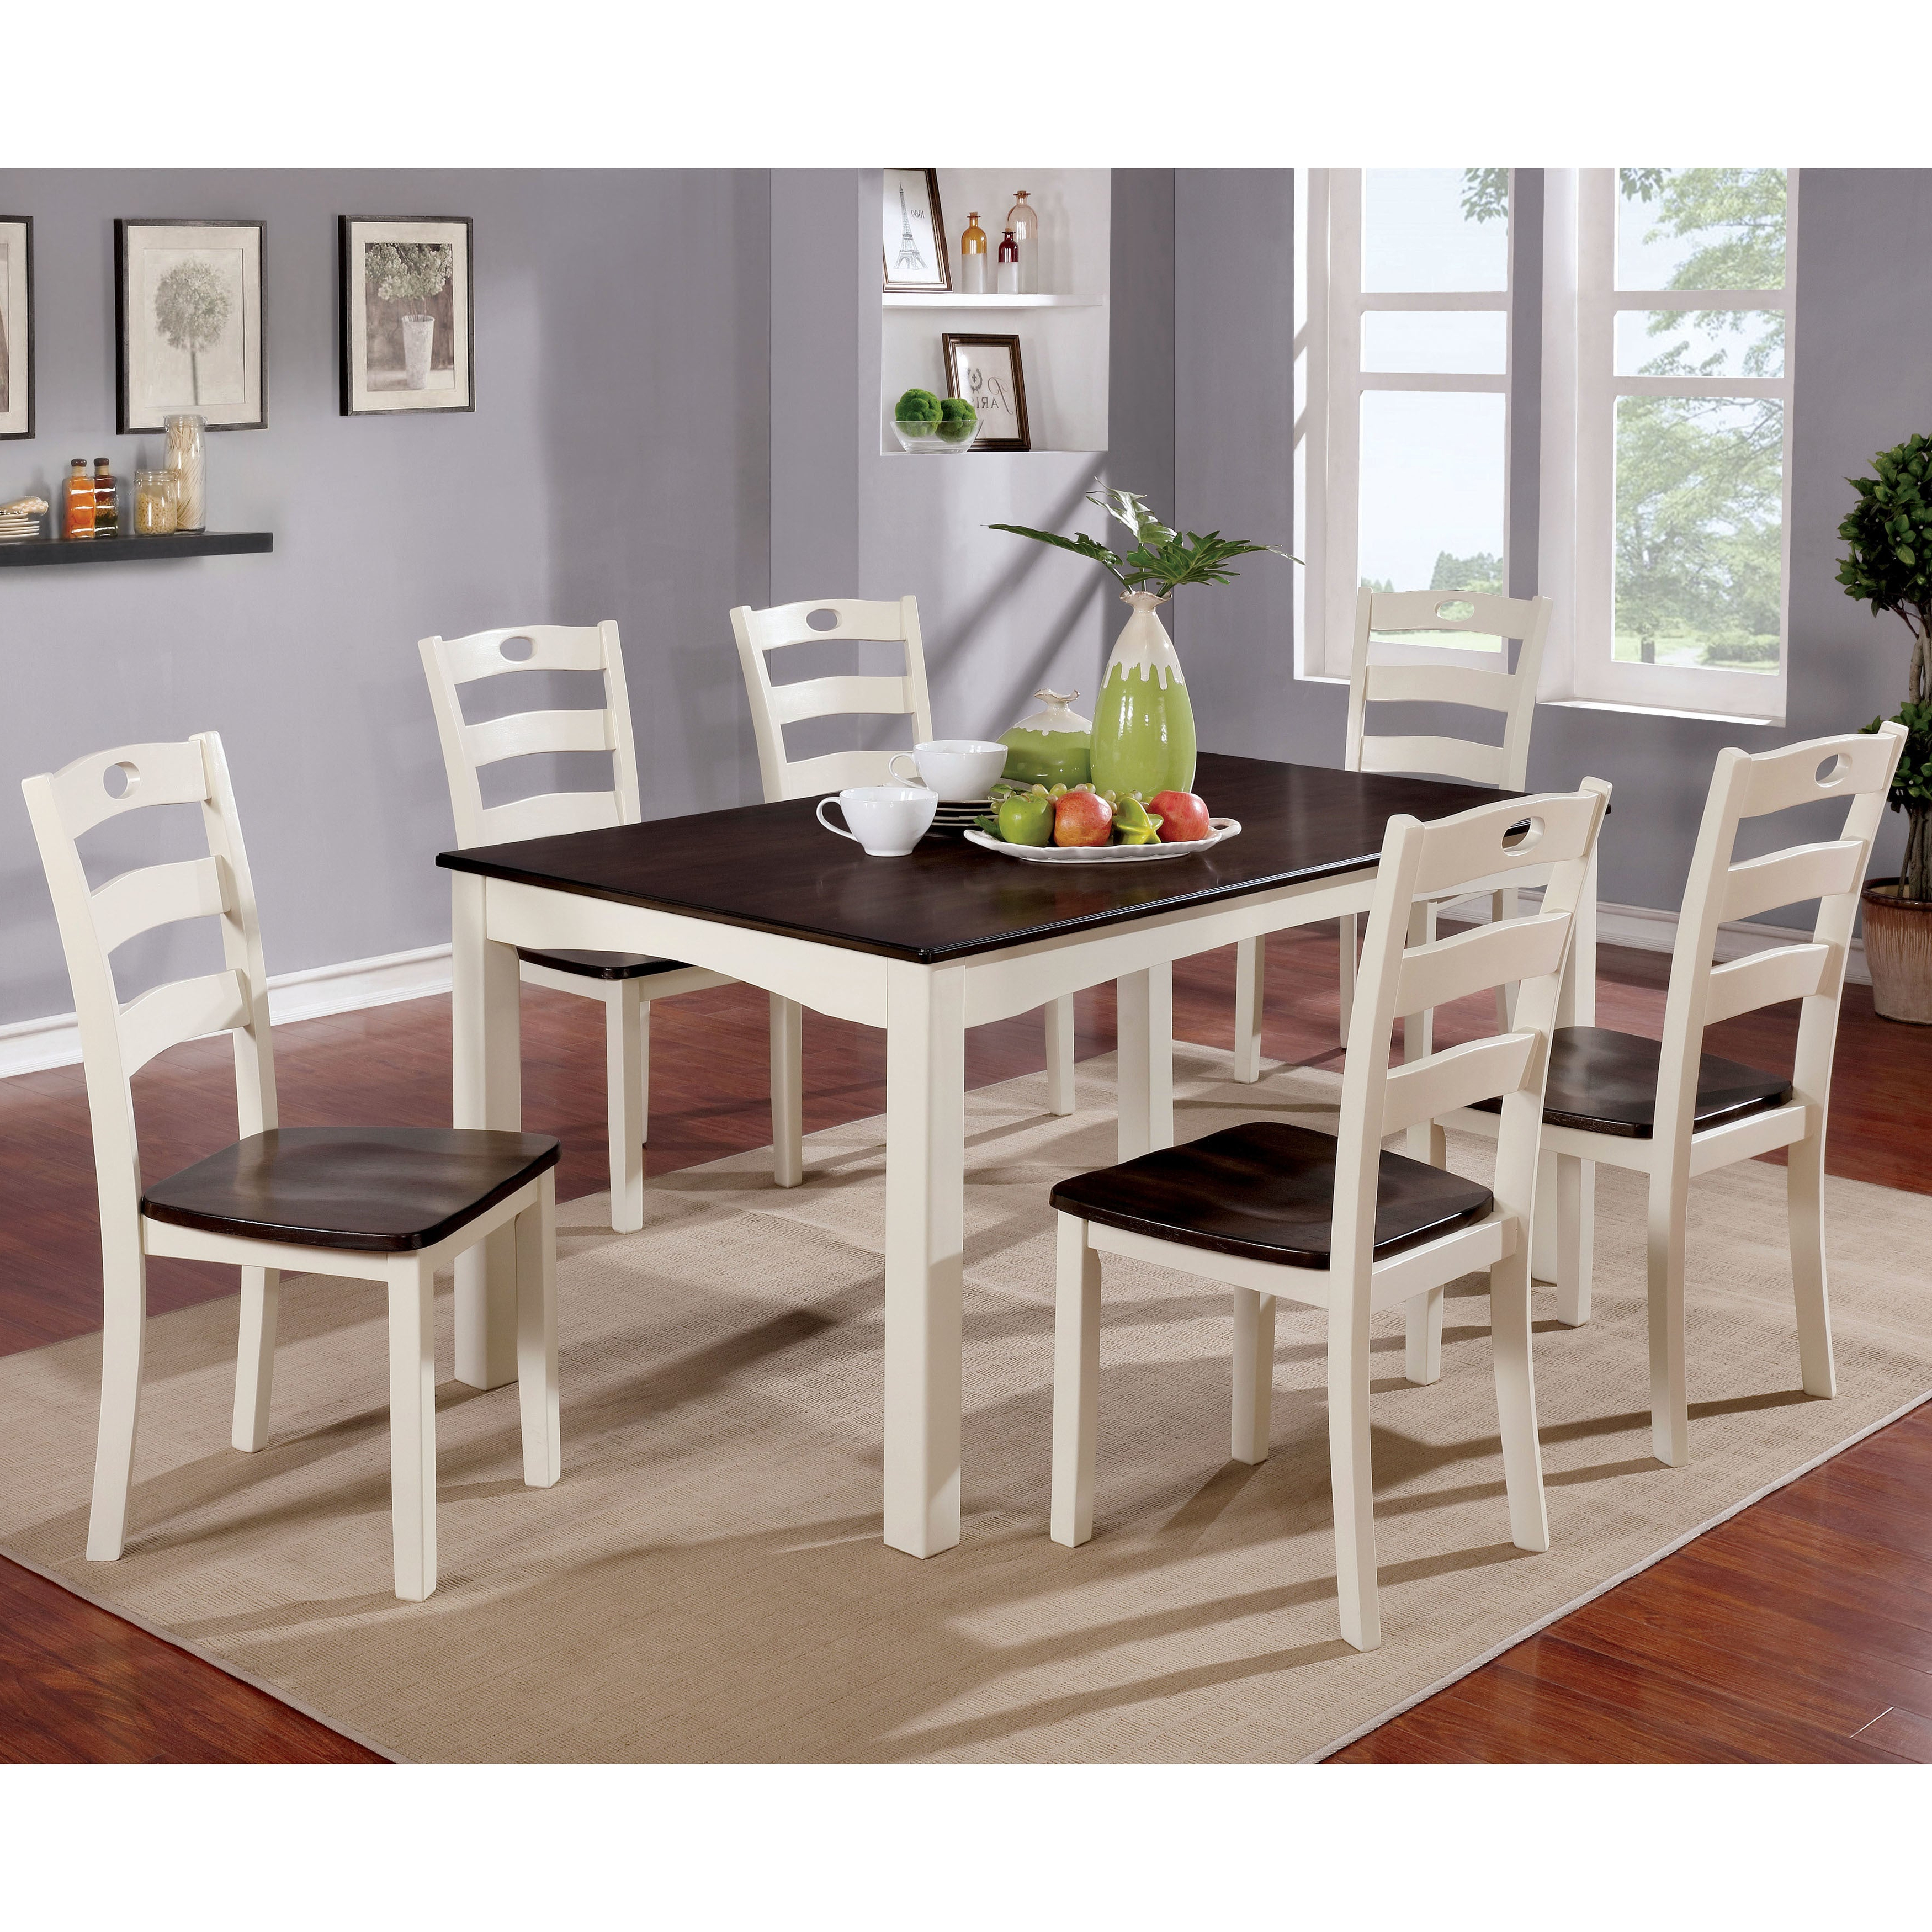 Trendy Buy Kitchen & Dining Room Sets Sale Ends In 2 Days Online At Within Aria 5 Piece Dining Sets (View 24 of 25)